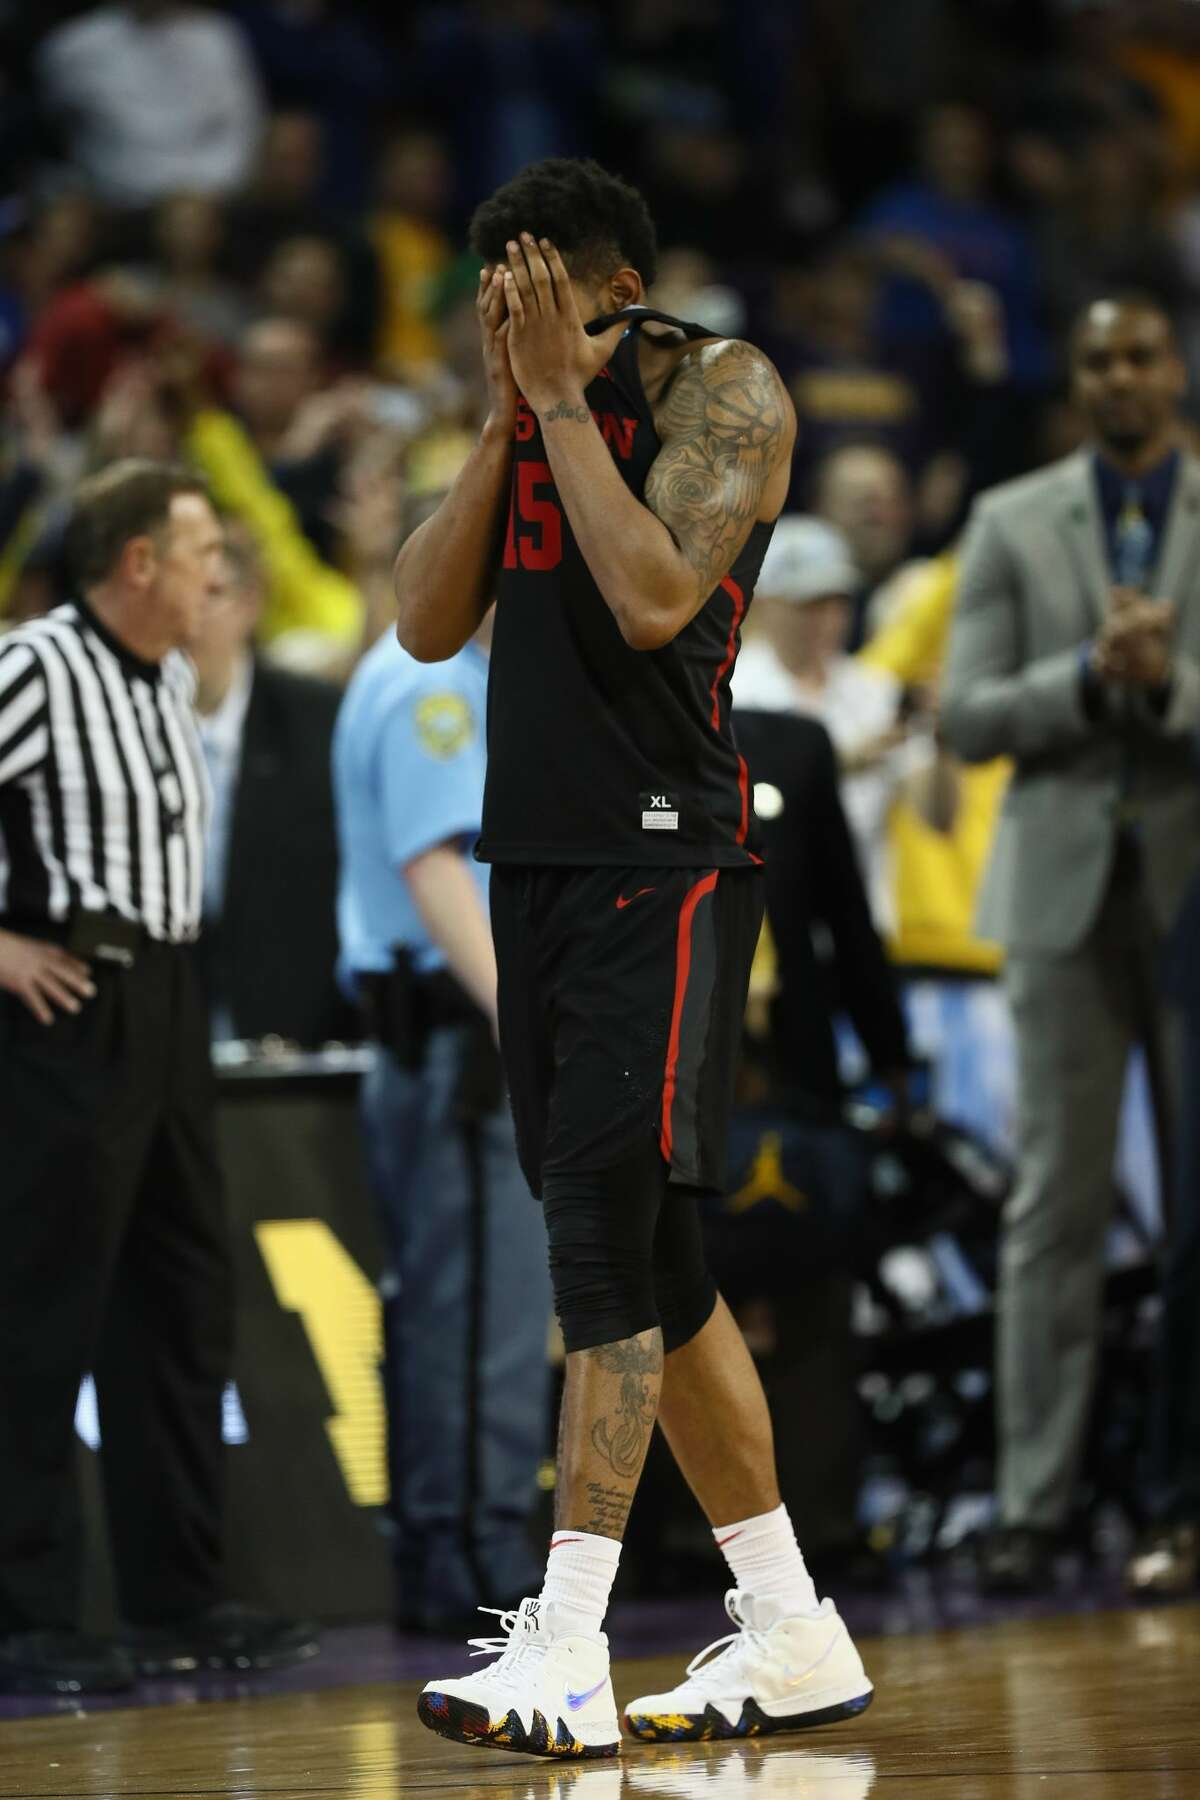 WICHITA, KS - MARCH 17: Devin Davis #15 of the Houston Cougars reacts to their 63-64 loss to the Michigan Wolverines in the second half during the second round of the 2018 NCAA Men's Basketball Tournament at INTRUST Bank Arena on March 17, 2018 in Wichita, Kansas. (Photo by Jamie Squire/Getty Images)